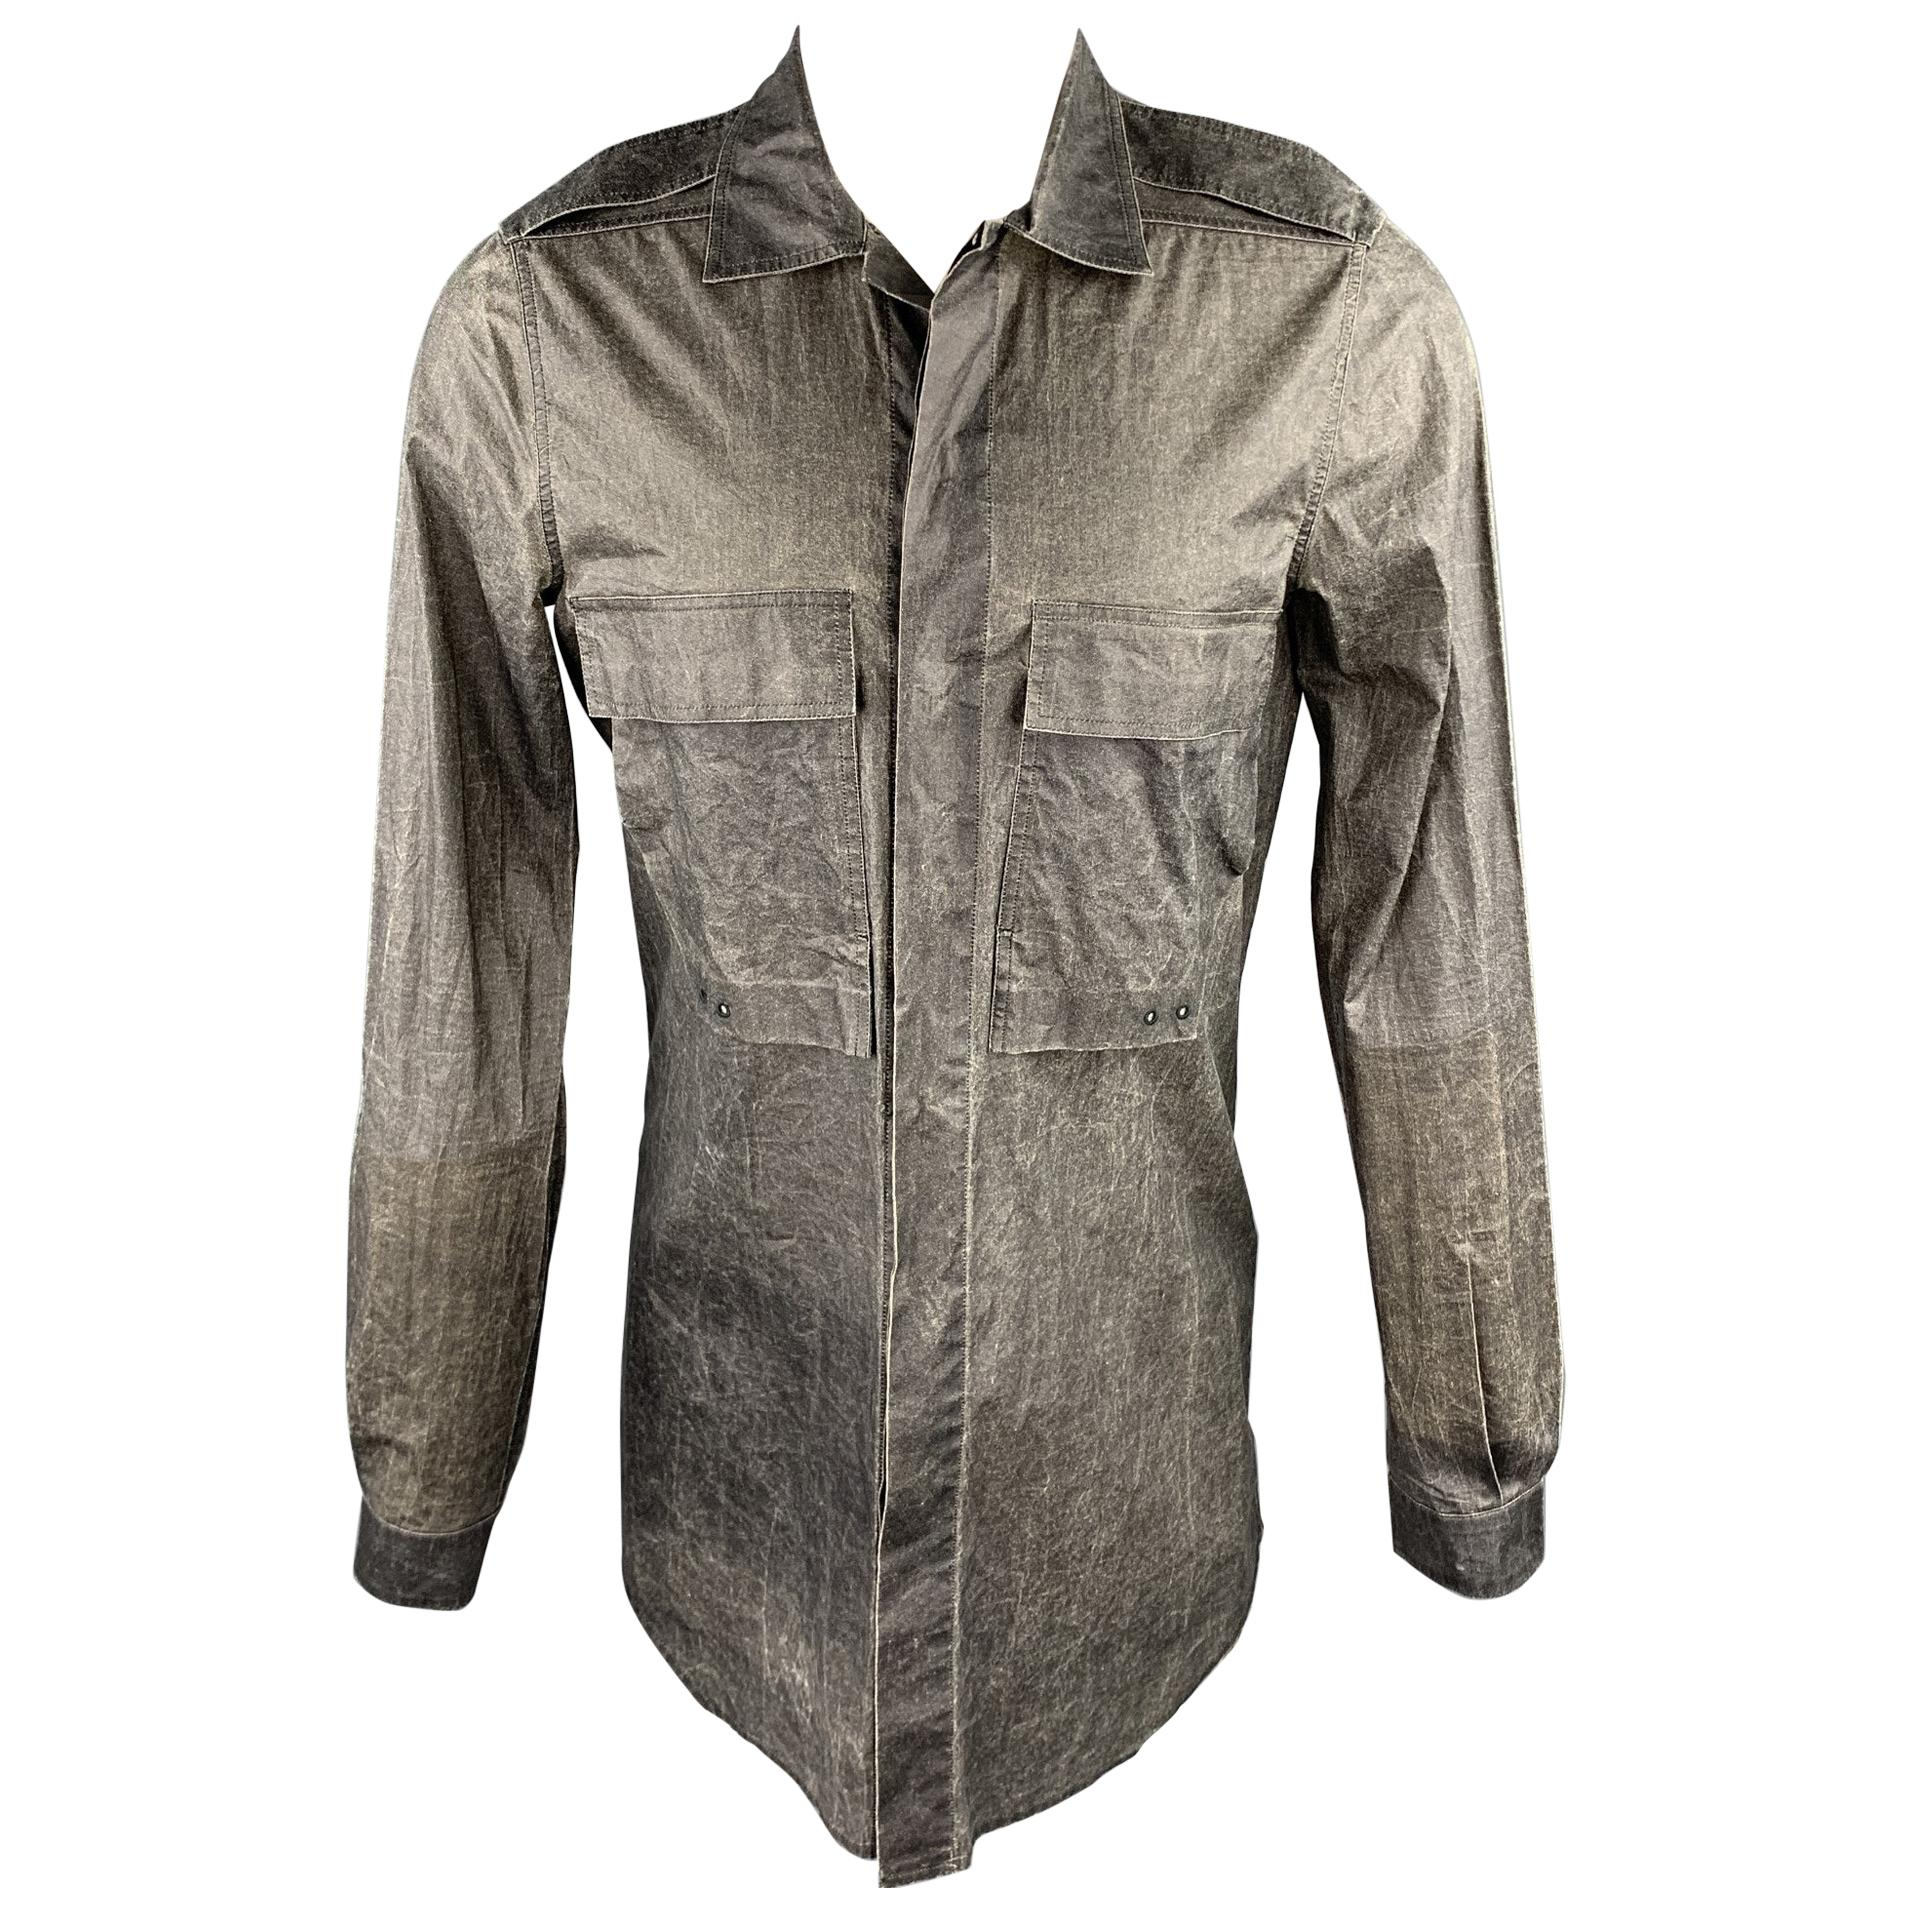 RICK OWENS CYCLOPS S/S 2016 Size M Charcoal Distressed Cotton Long Sleeve Shirt